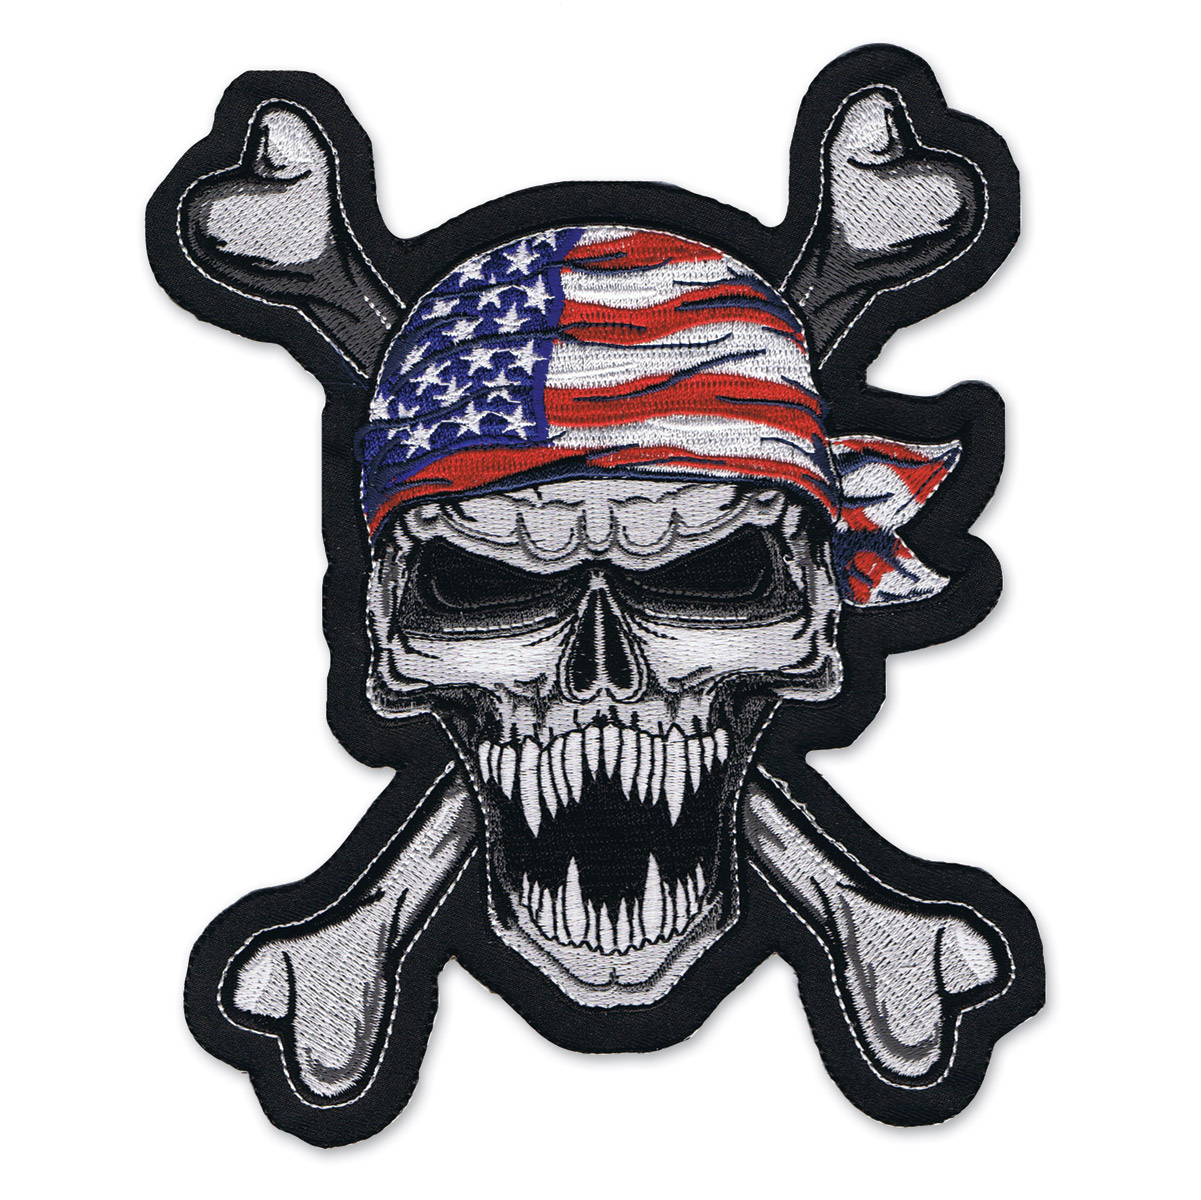 Embroidered Patches - Lethal Threat Lethal Threat